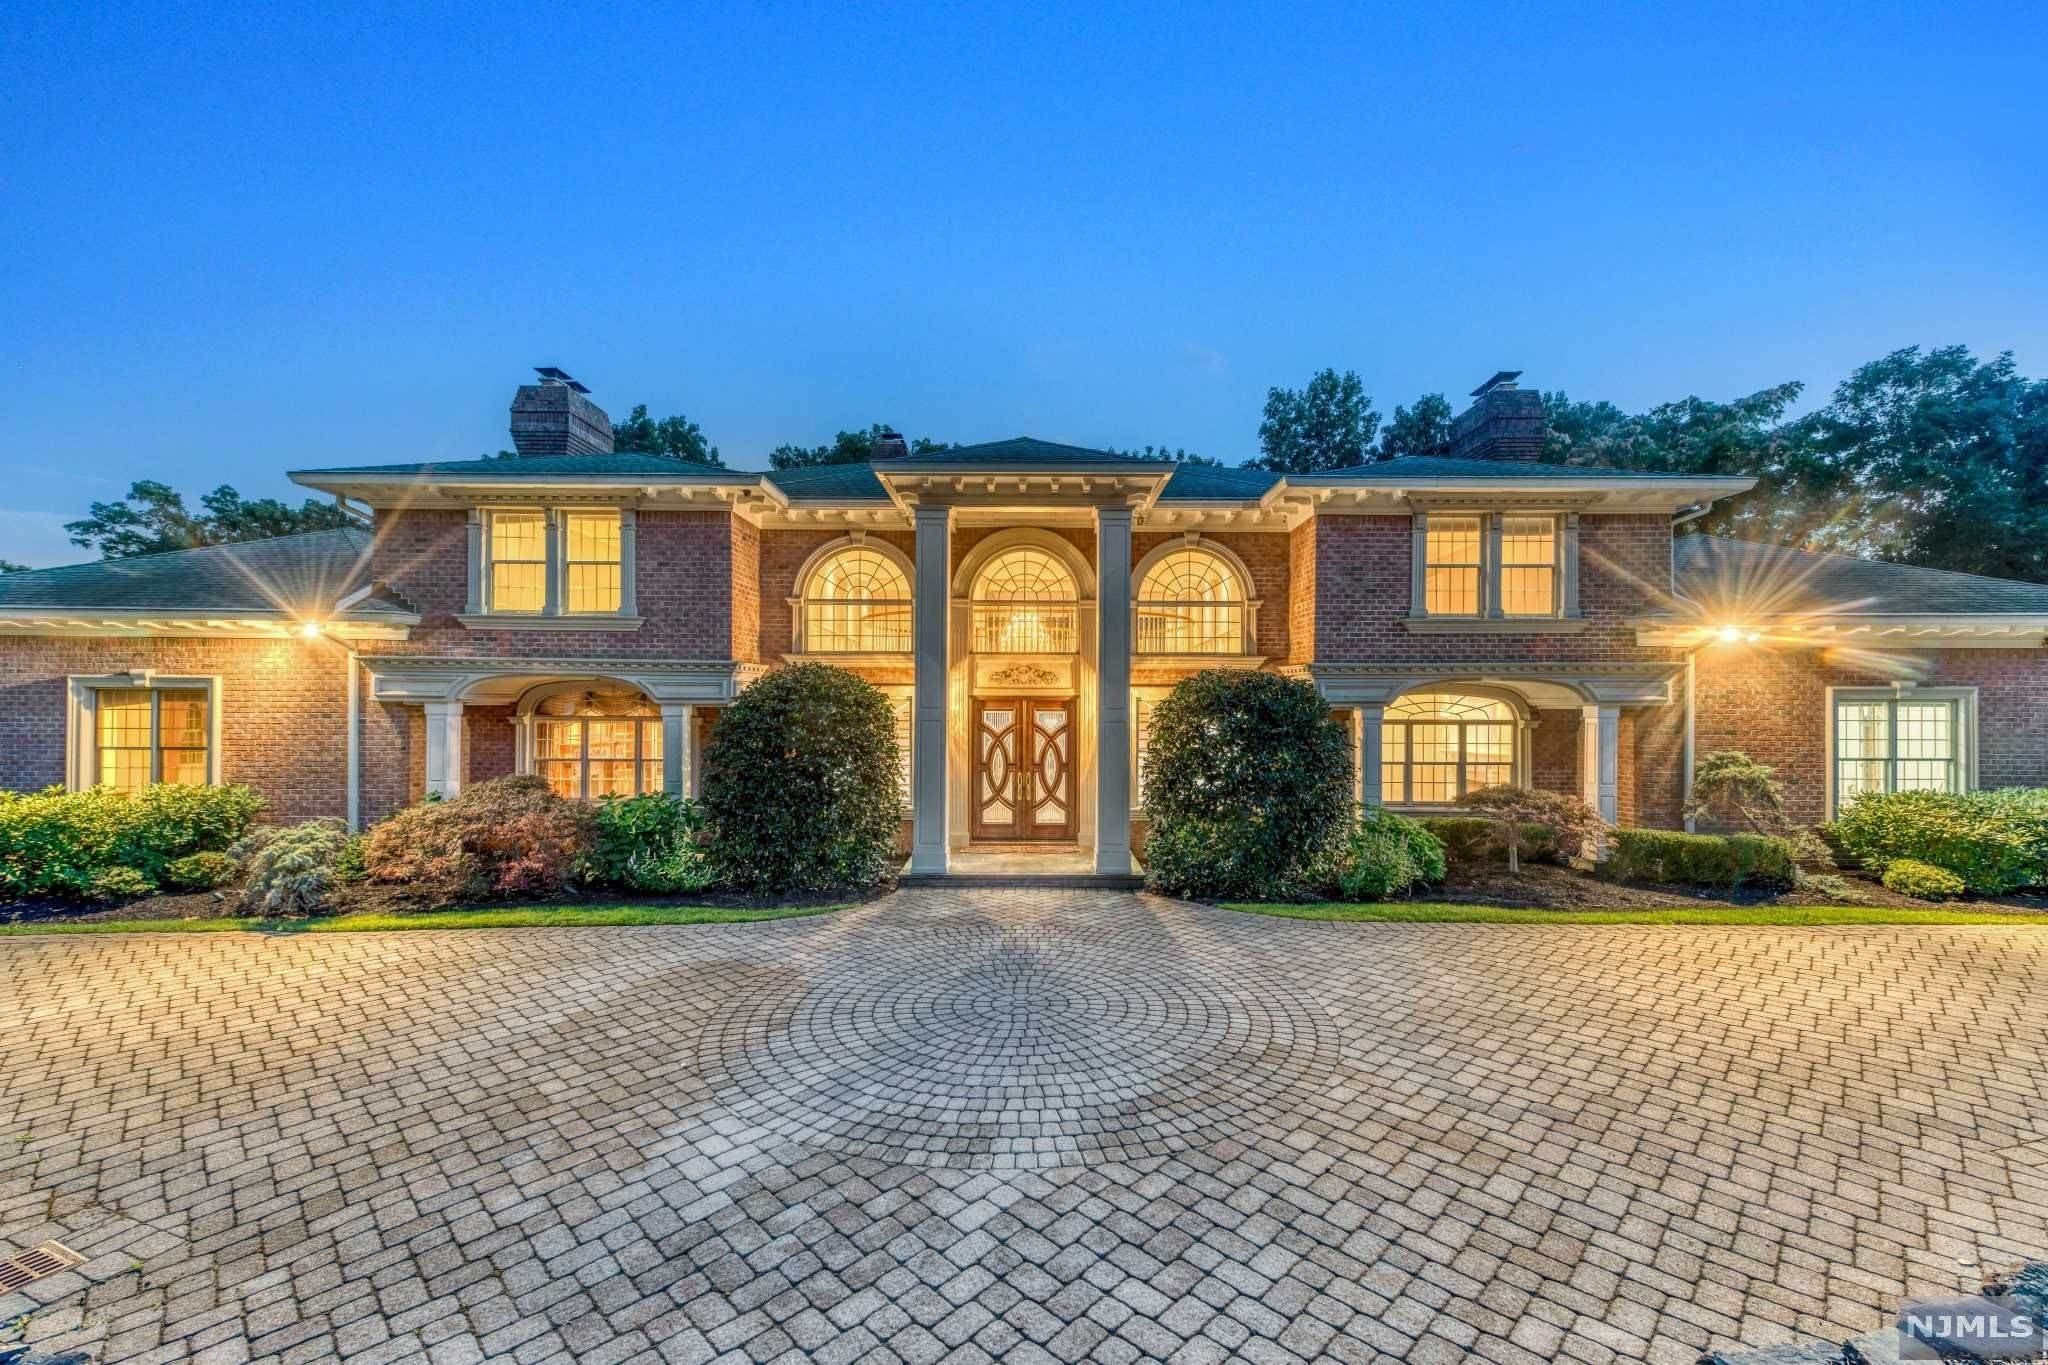 Single Family Home at 14 Shinnecock Trail Franklin Lakes, New Jersey, 07417 United States